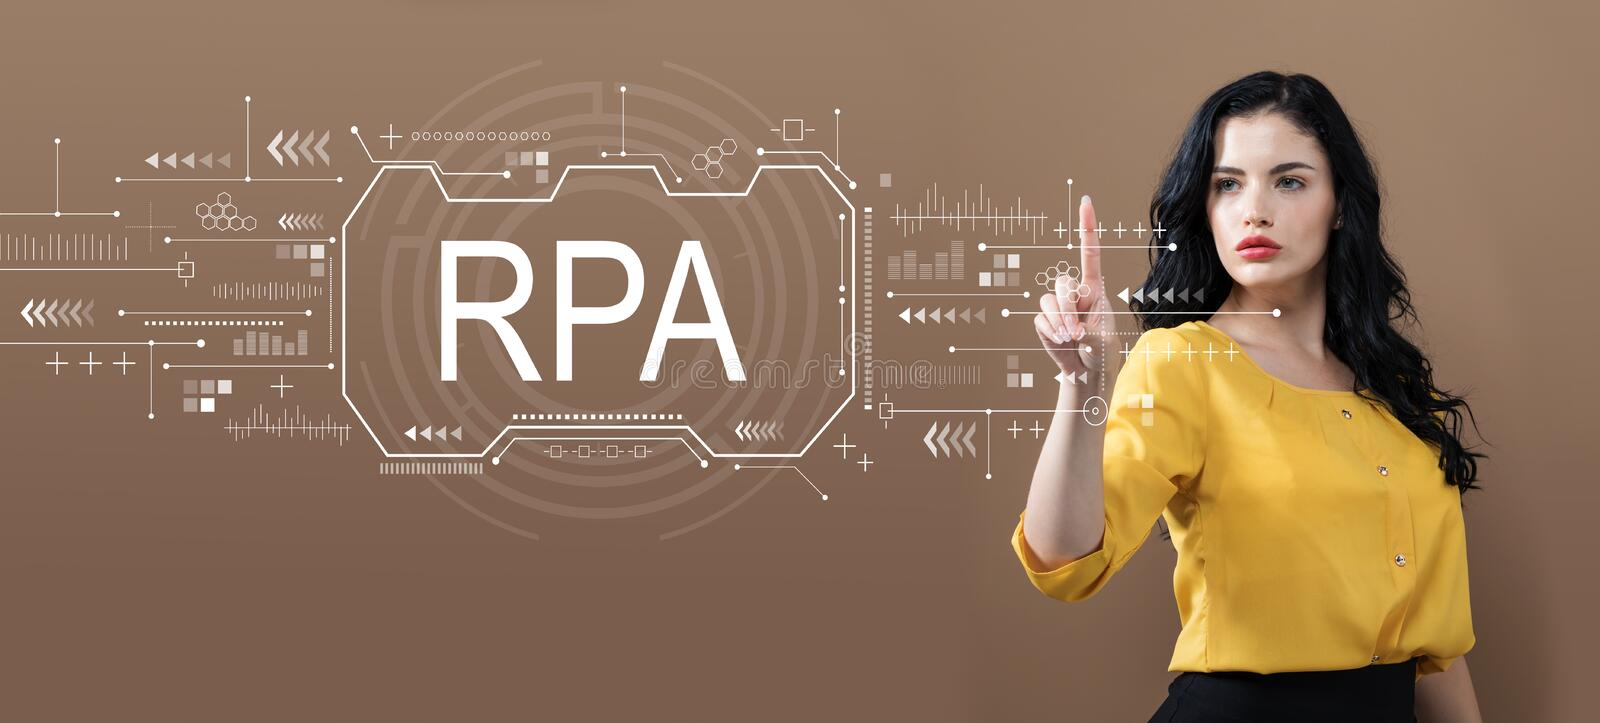 Robotic process automation concept with business woman royalty free stock images